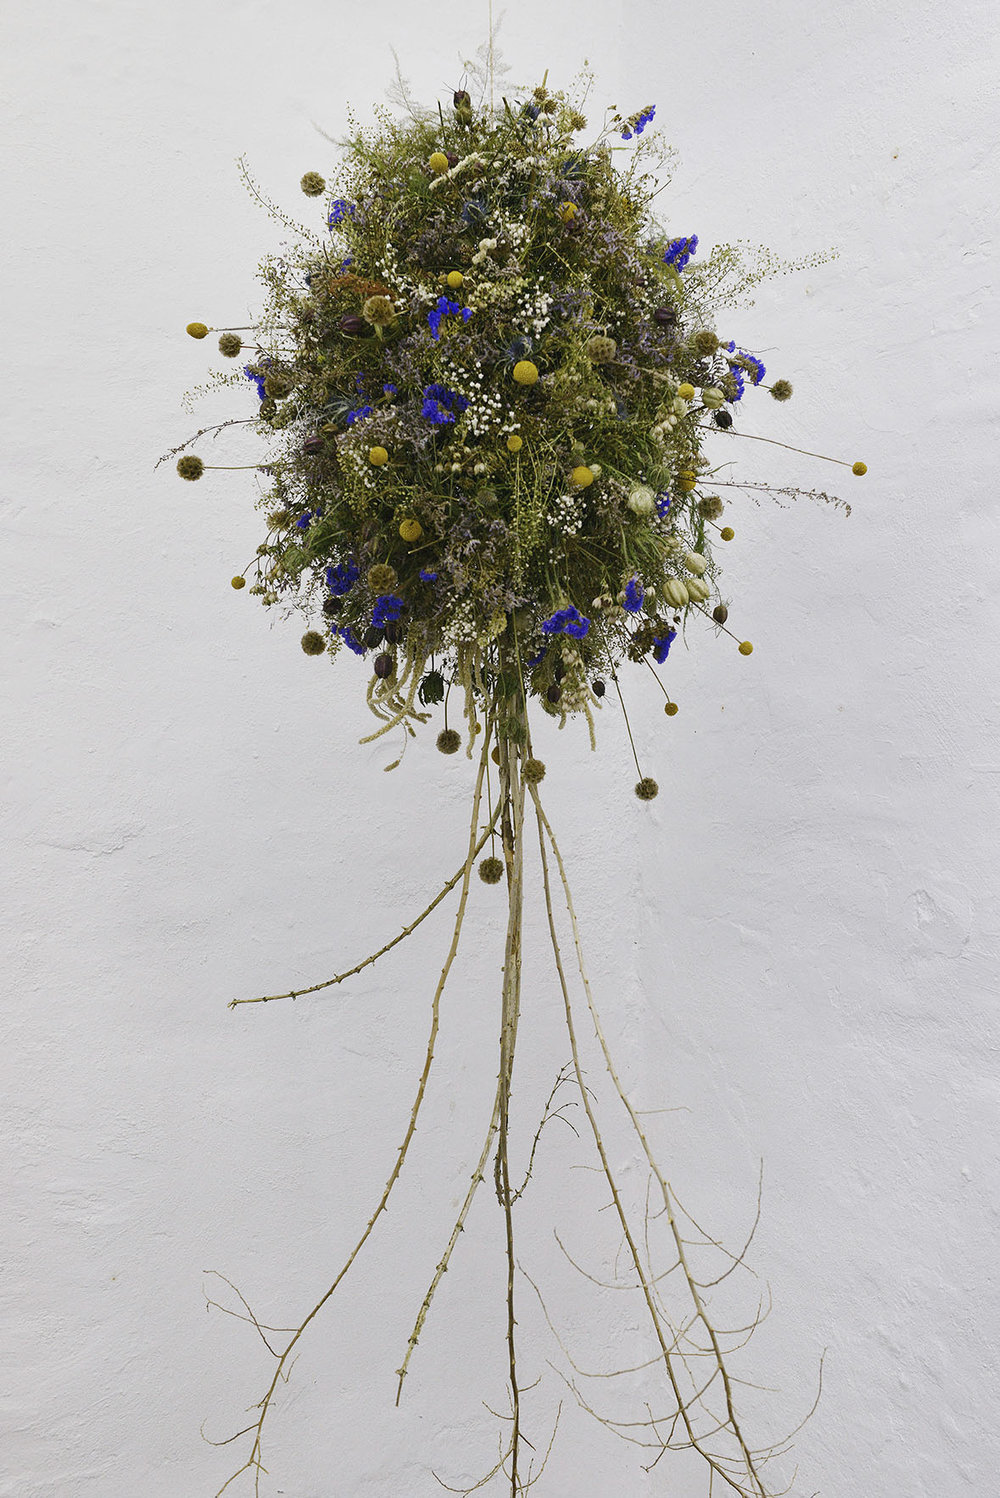 """Louise Drost Harton """"Tree,"""" 2018 (Installation made out of dead flowers and branches build on wire, approx. 60X100 cm). Photo: Valérie Collart."""